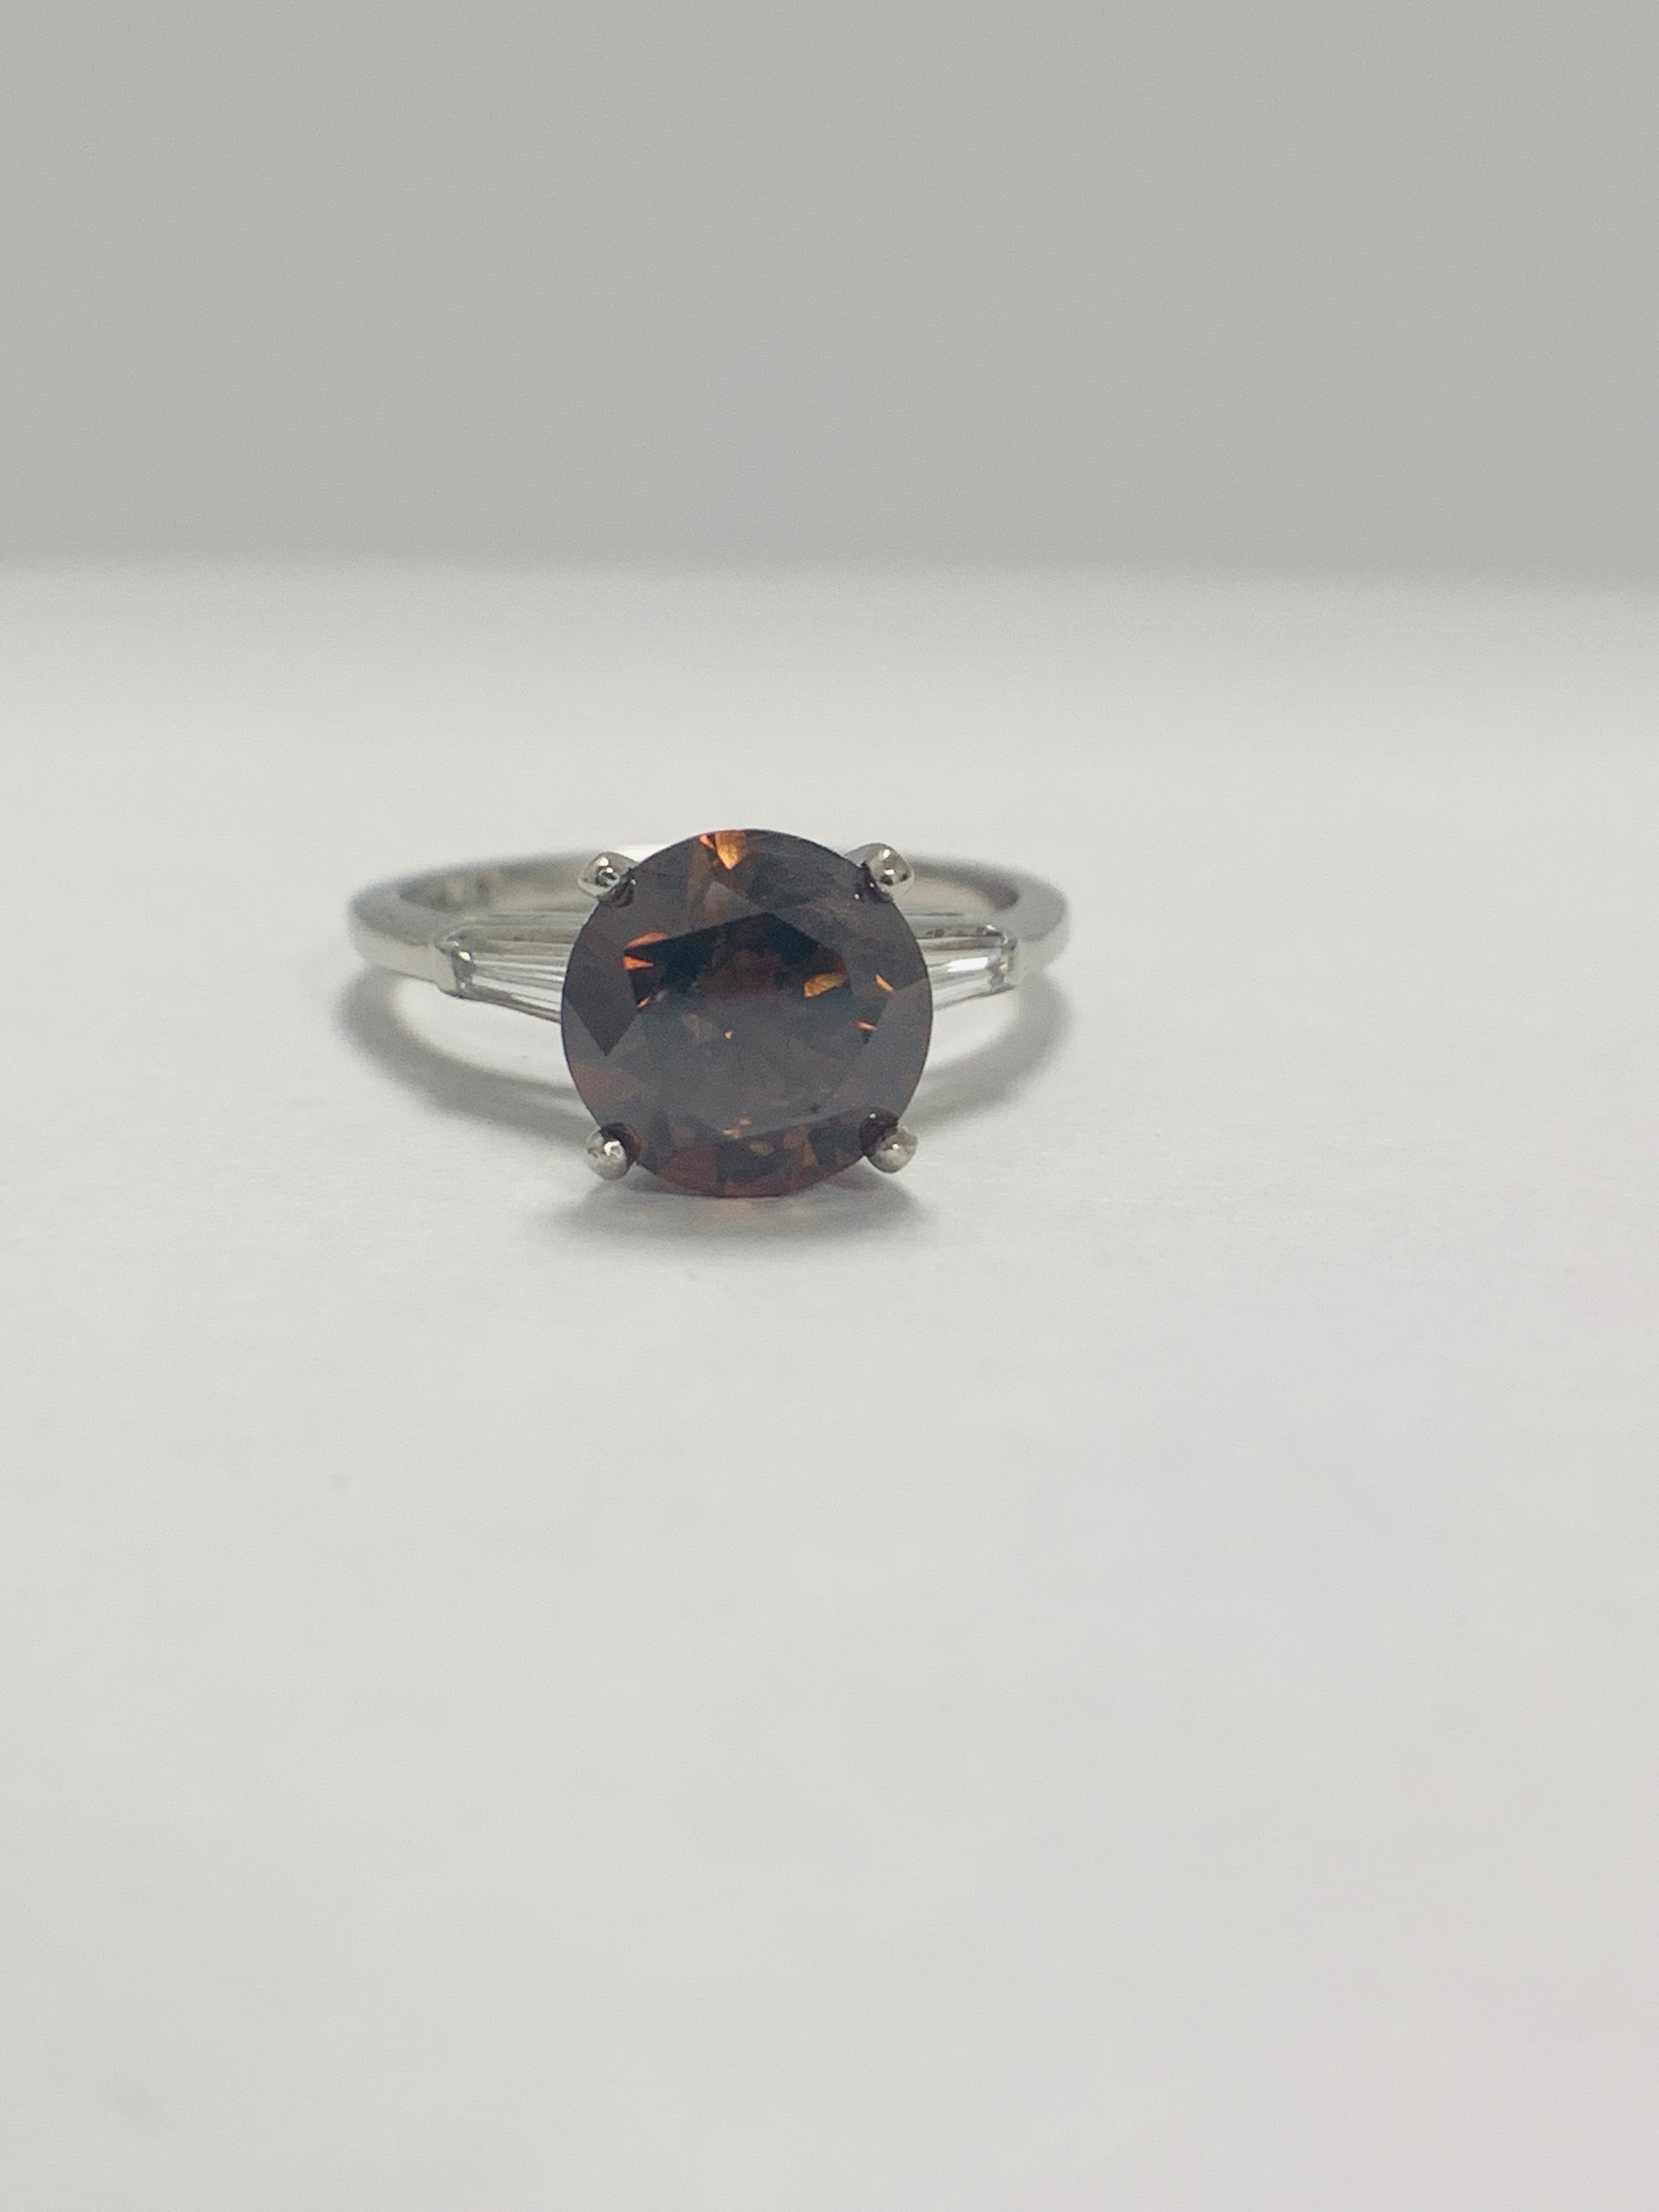 Platinum Diamond ring featuring centre, round brilliant cut, deep orangey brown Diamond (2.15ct) - Image 2 of 14